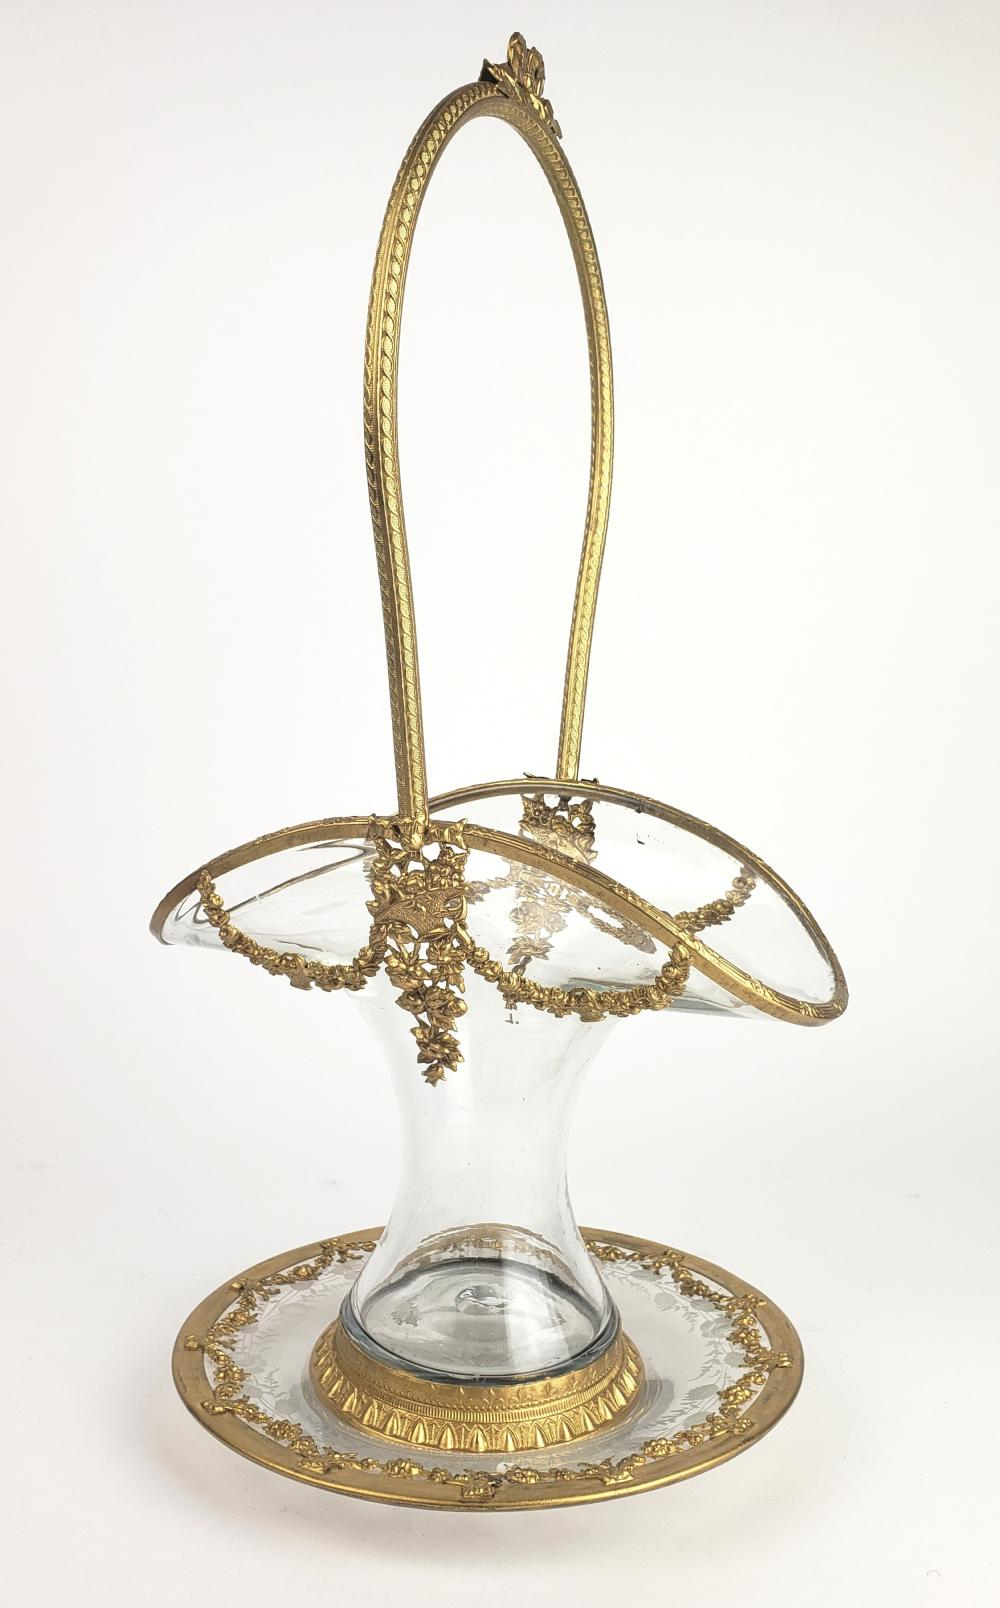 19th C. French Gilt Bronze & Crystal Basket with Underplate